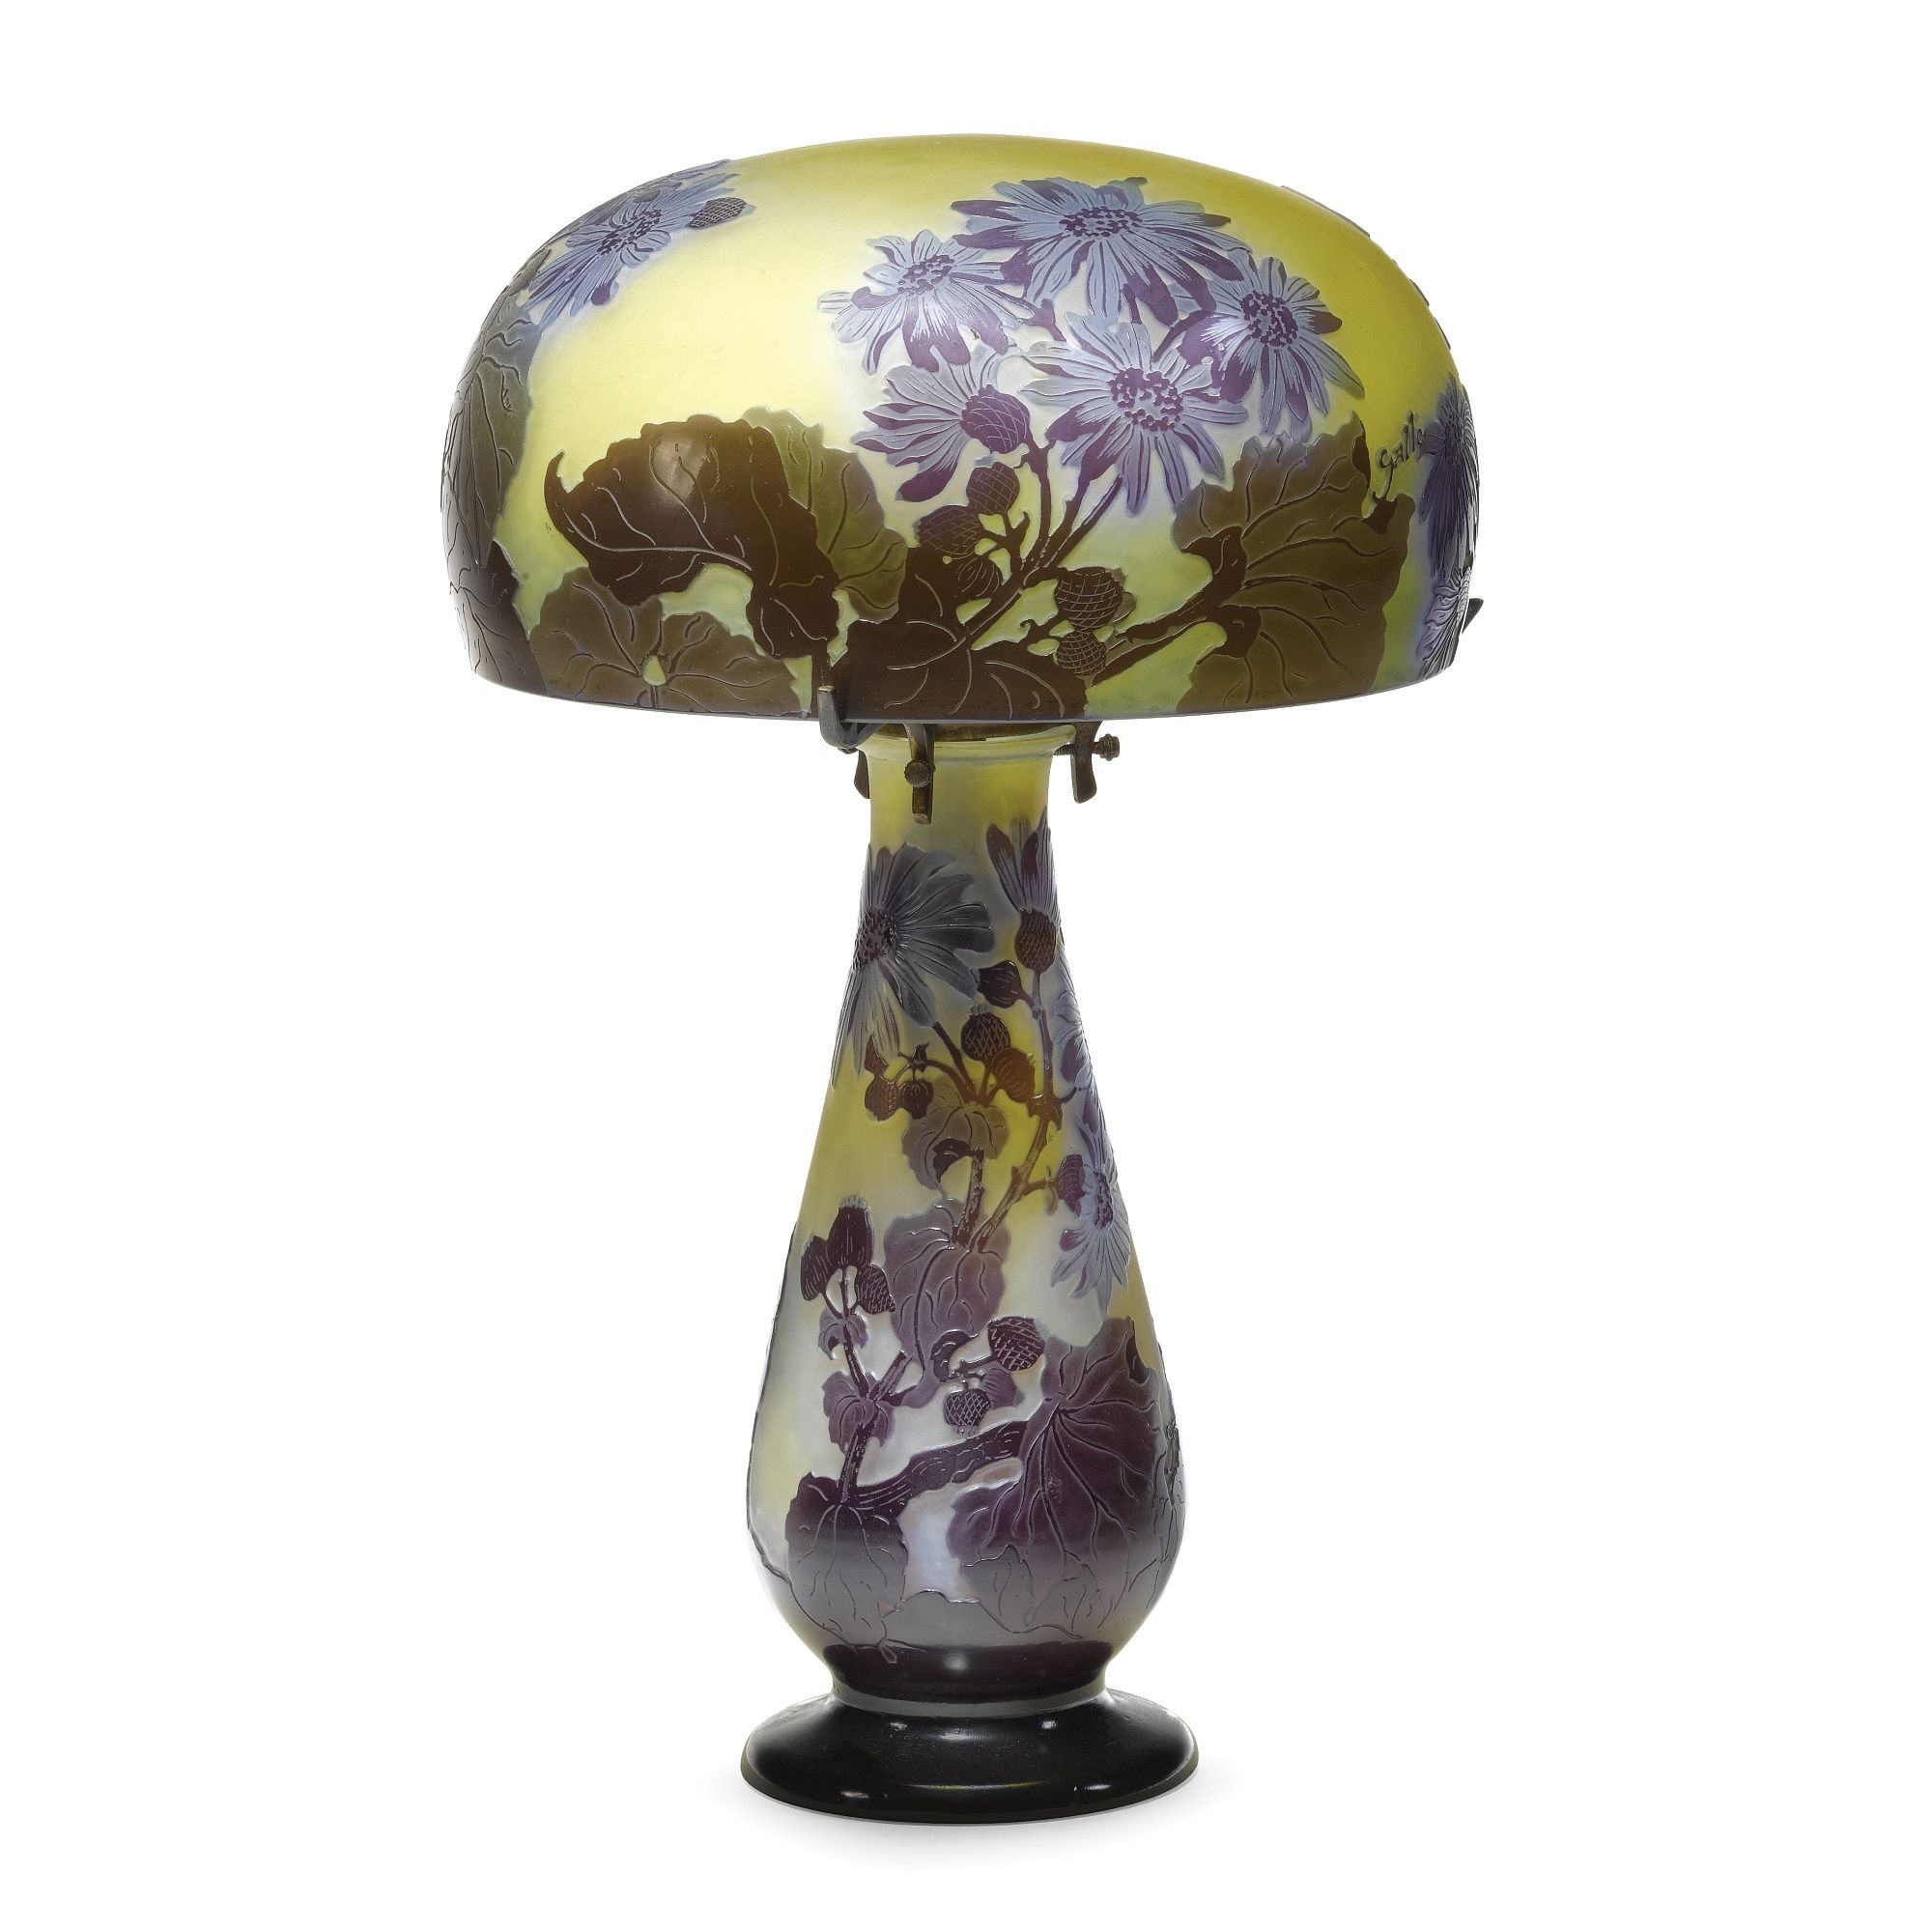 EMILE GALLÉ A BLUE DAISIES LAMP internally decorated cameo glass, bronze mount shade and base with cameo mark `Gallé' 34.7cm.; 1ft 1¾in. circa 1900